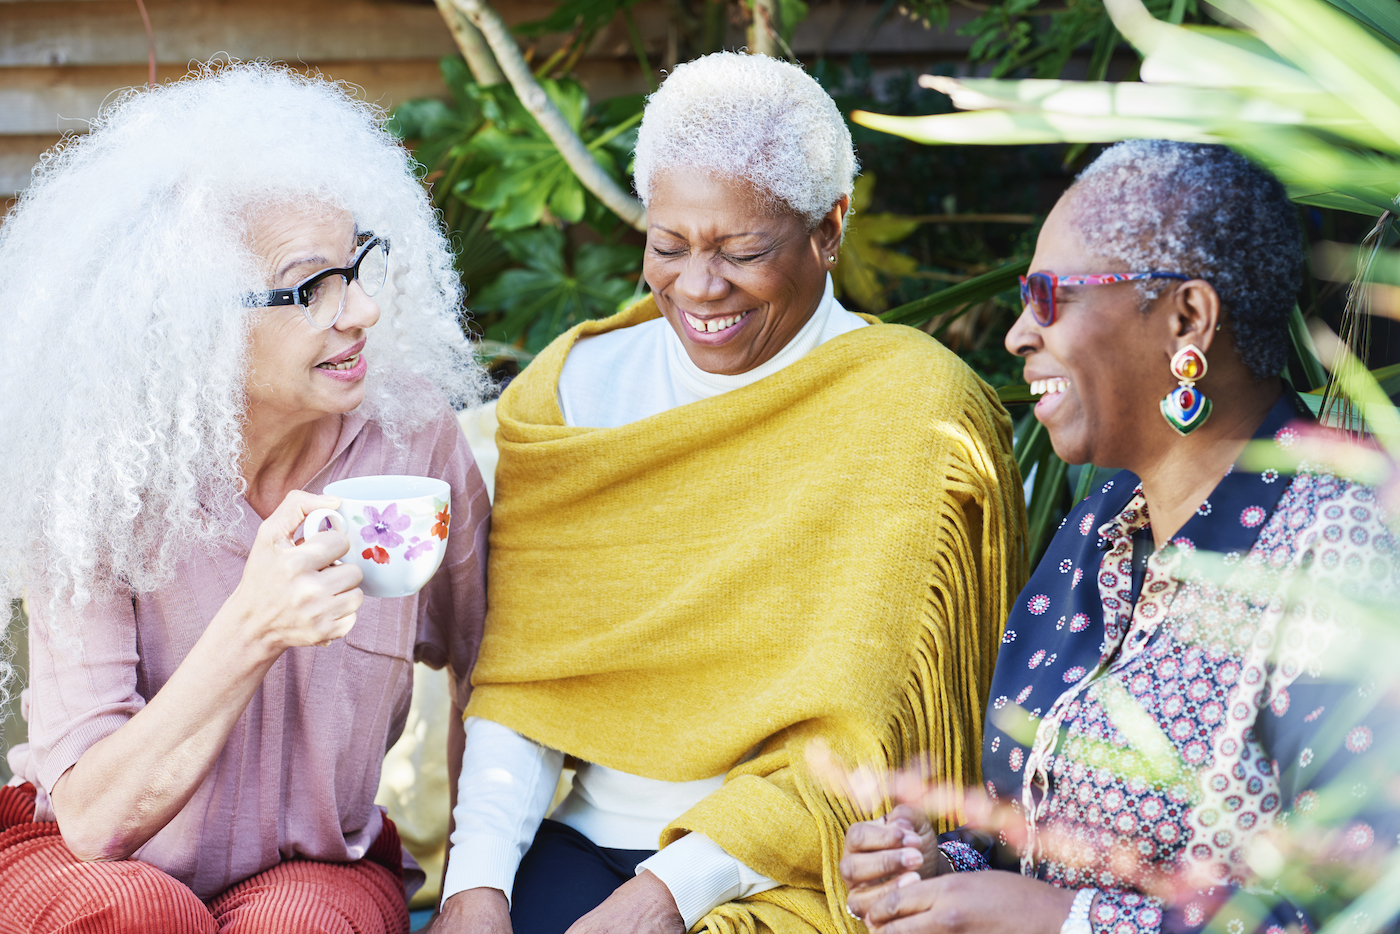 7 secrets to living a long, fulfilling life, according to people in their 80s, 90s, and 100s